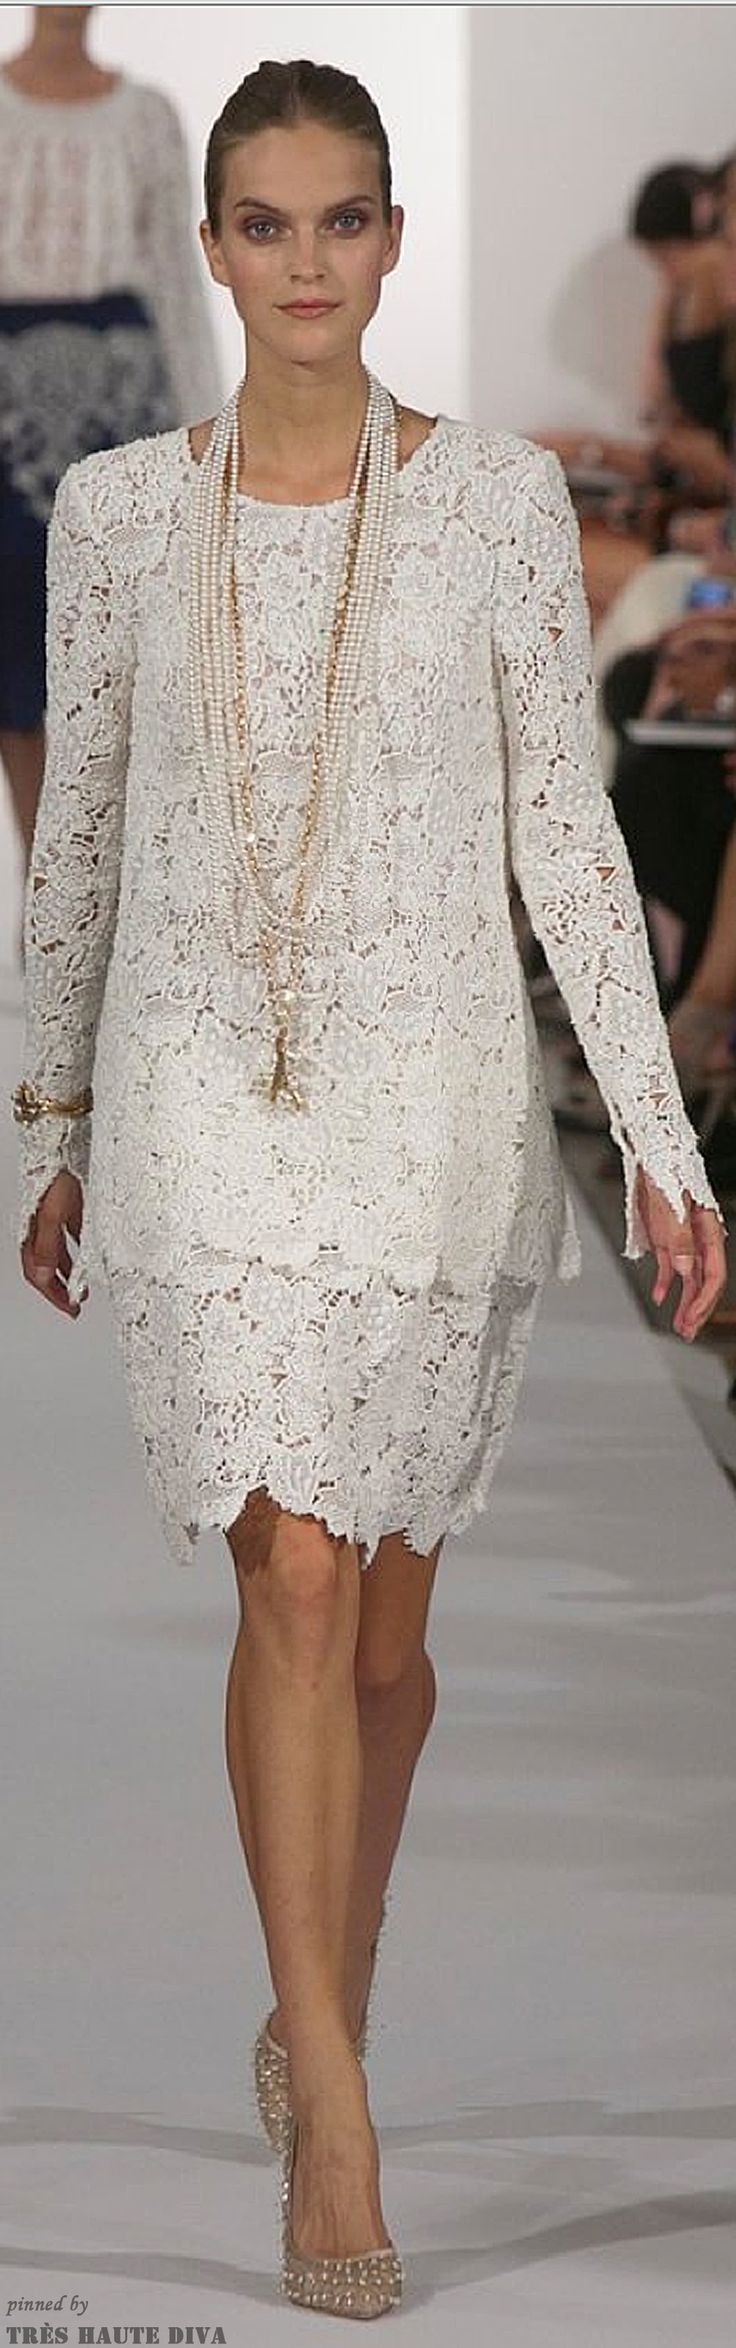 Oscar de La Renta  This seems to be a favorite of most women!!  This dress has been pinned more than any other item on my Pinterest!!!!